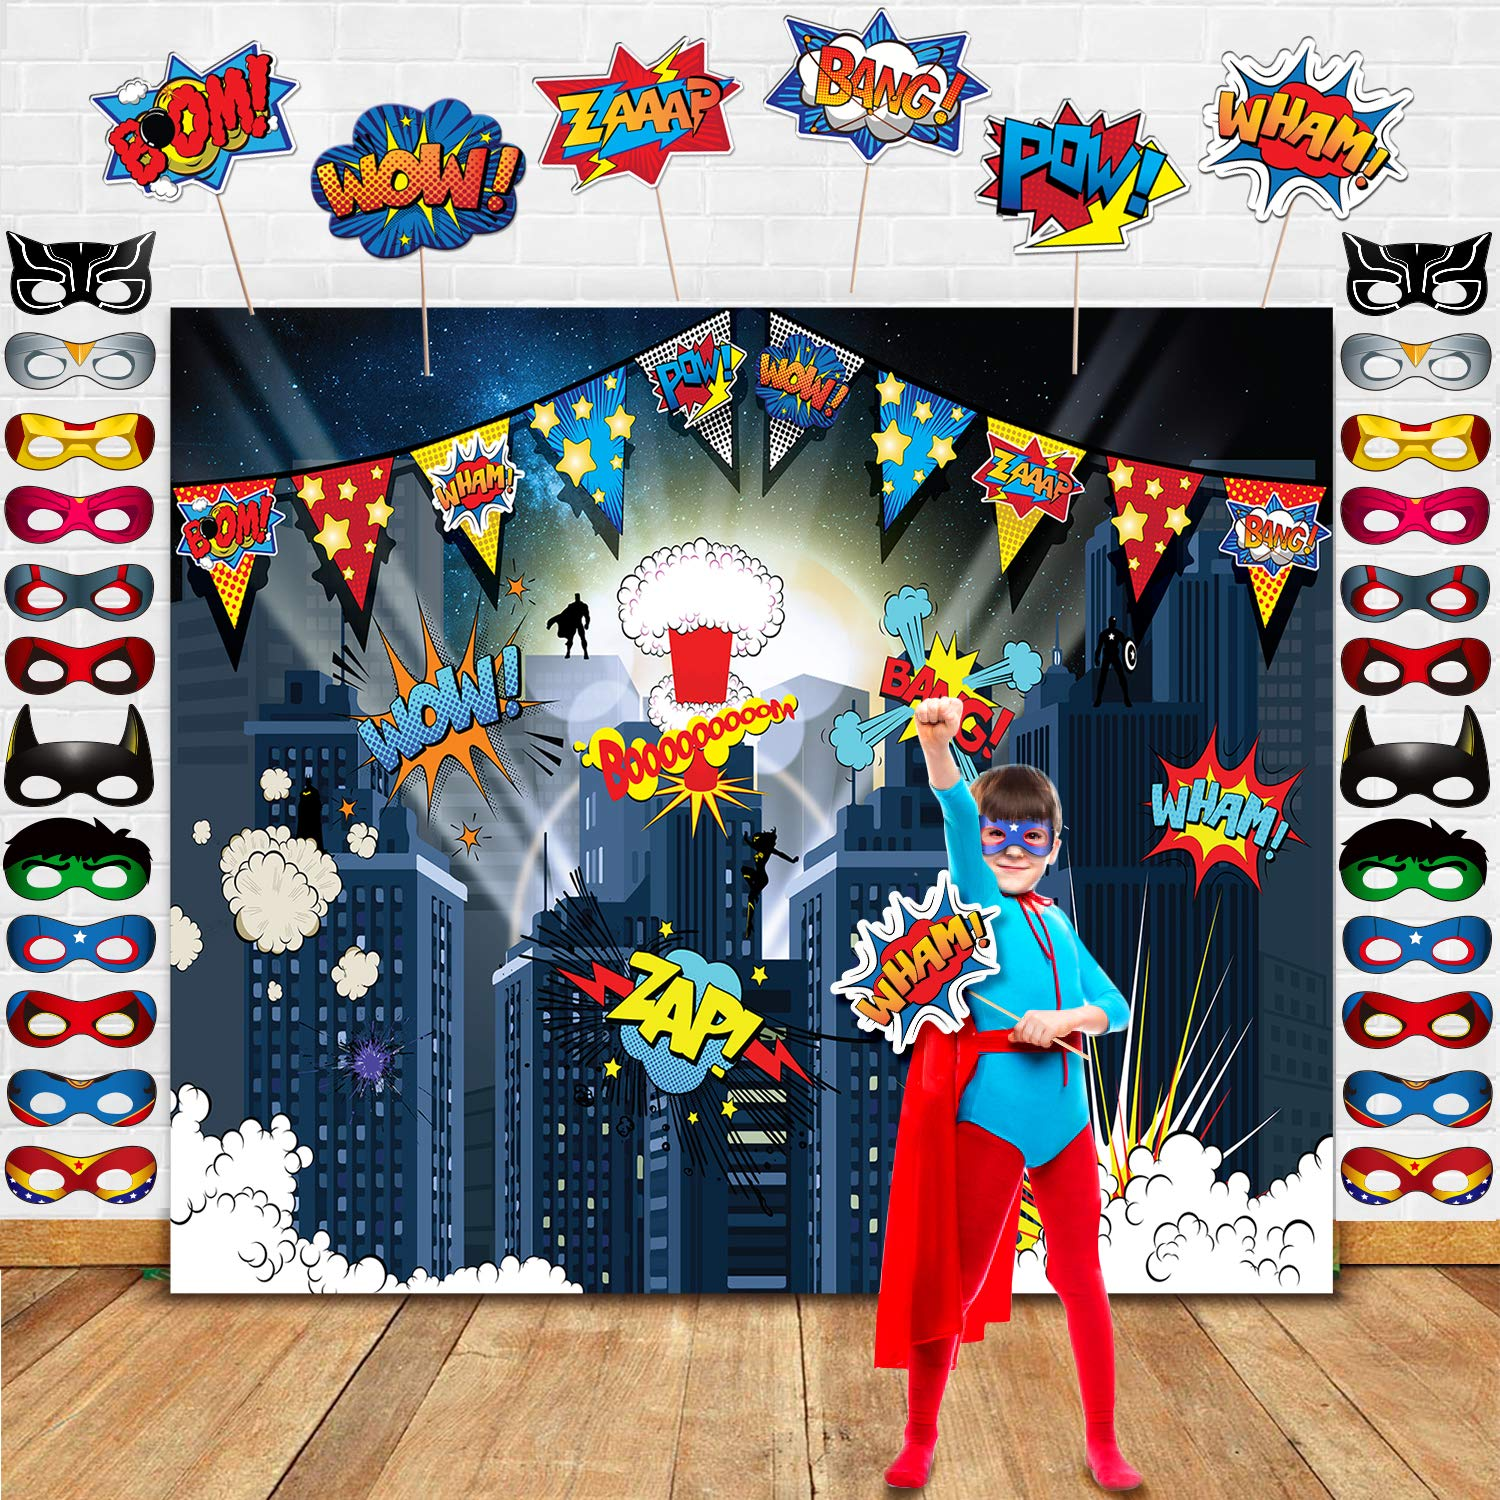 TMCCE Superhero Birthday Party Supplies Superhero Cityscape Photography Backdrop,24 Superhero Masks 6 Superhero Photo Booth Props For Superhero Birthday Party Decorations Favor